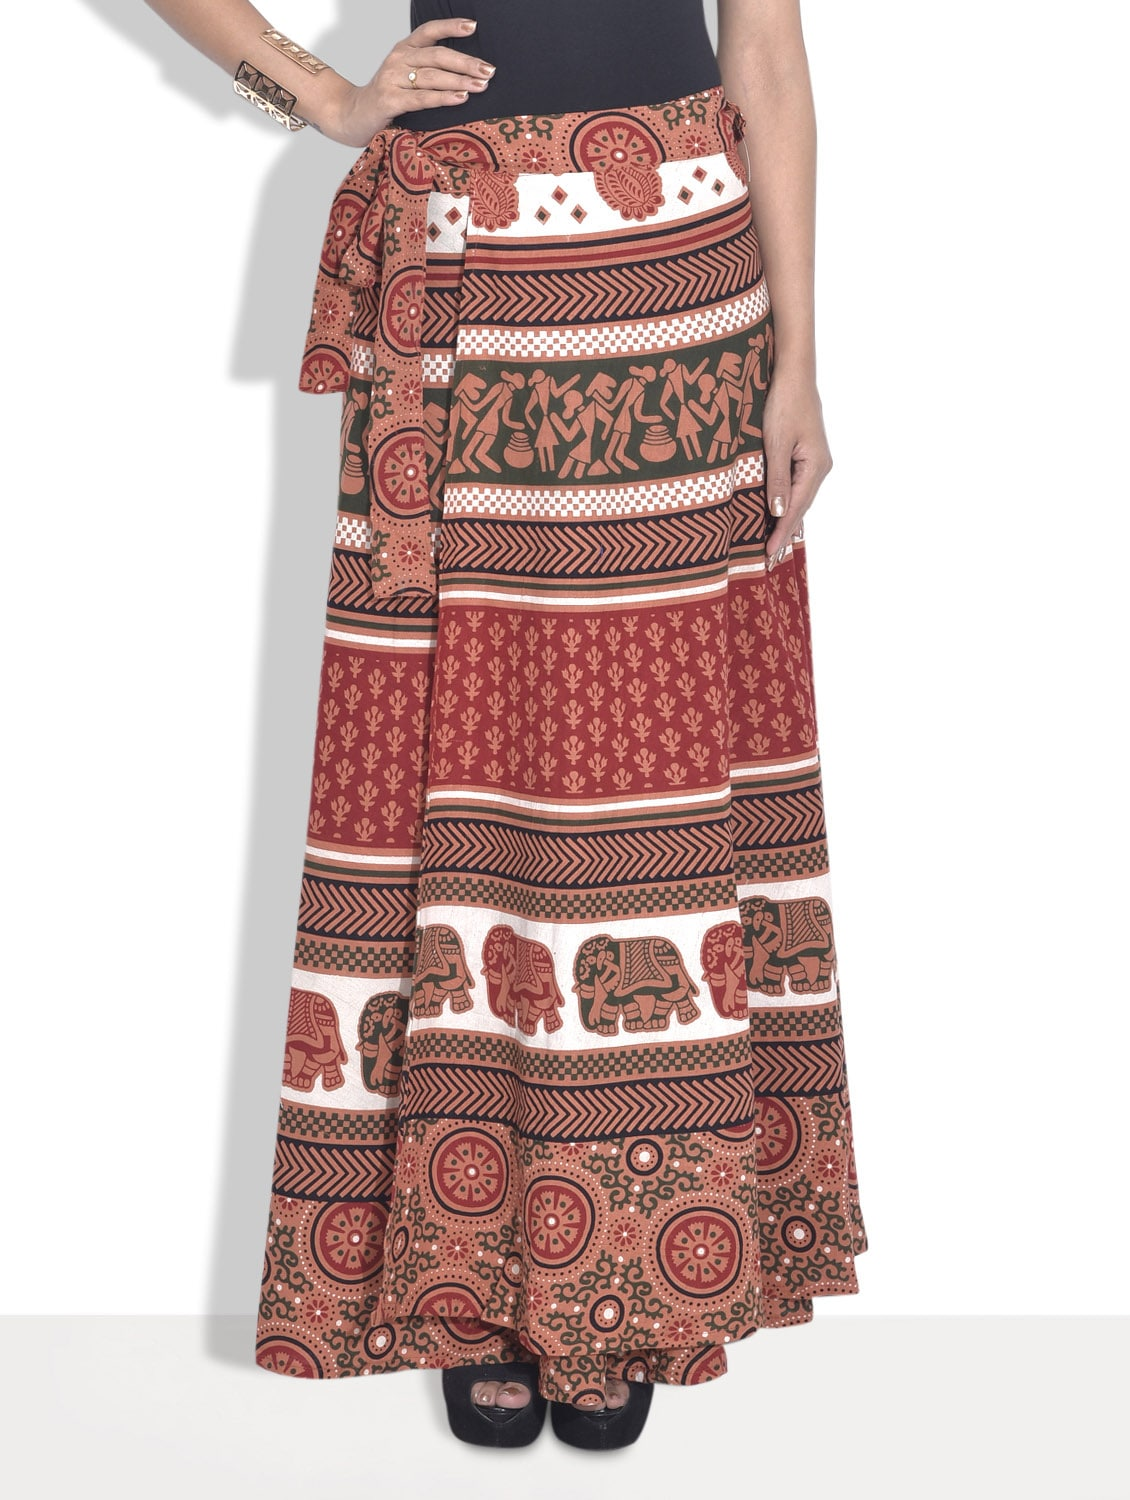 Multicoloured Printed Cotton Ethnic Skirt - By